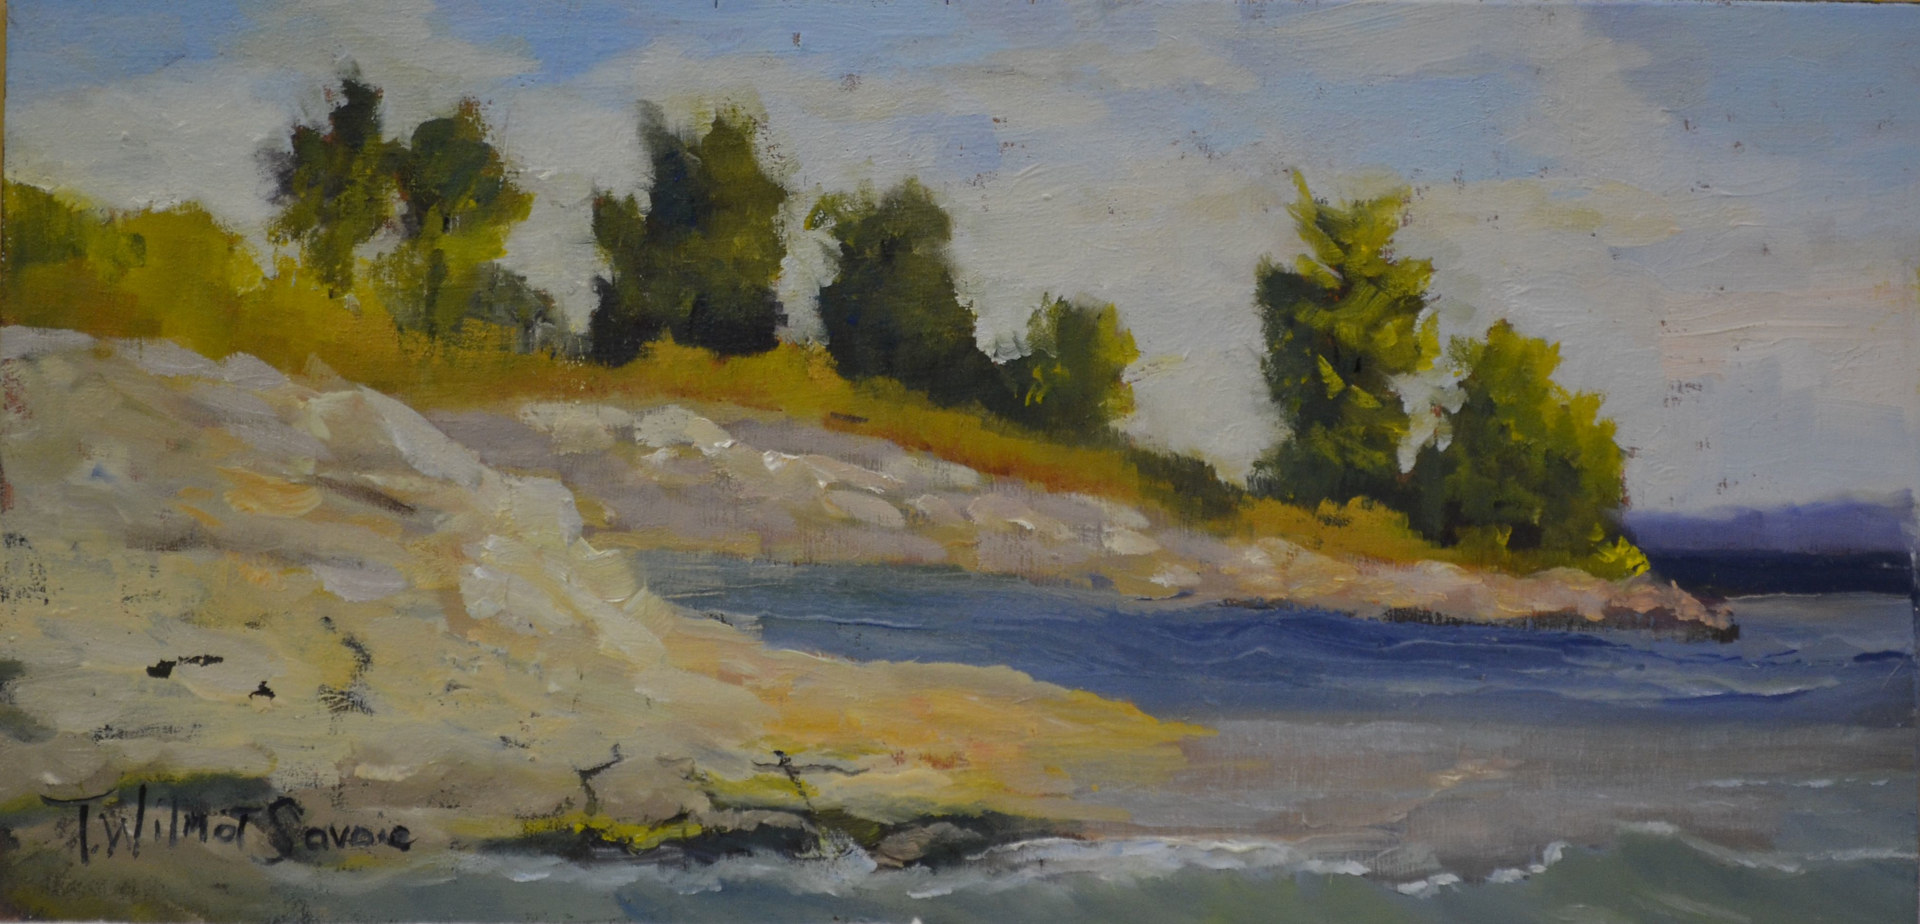 Ebb and Flow 11, 6 x 12; #36-0714 by Patricia Savoie